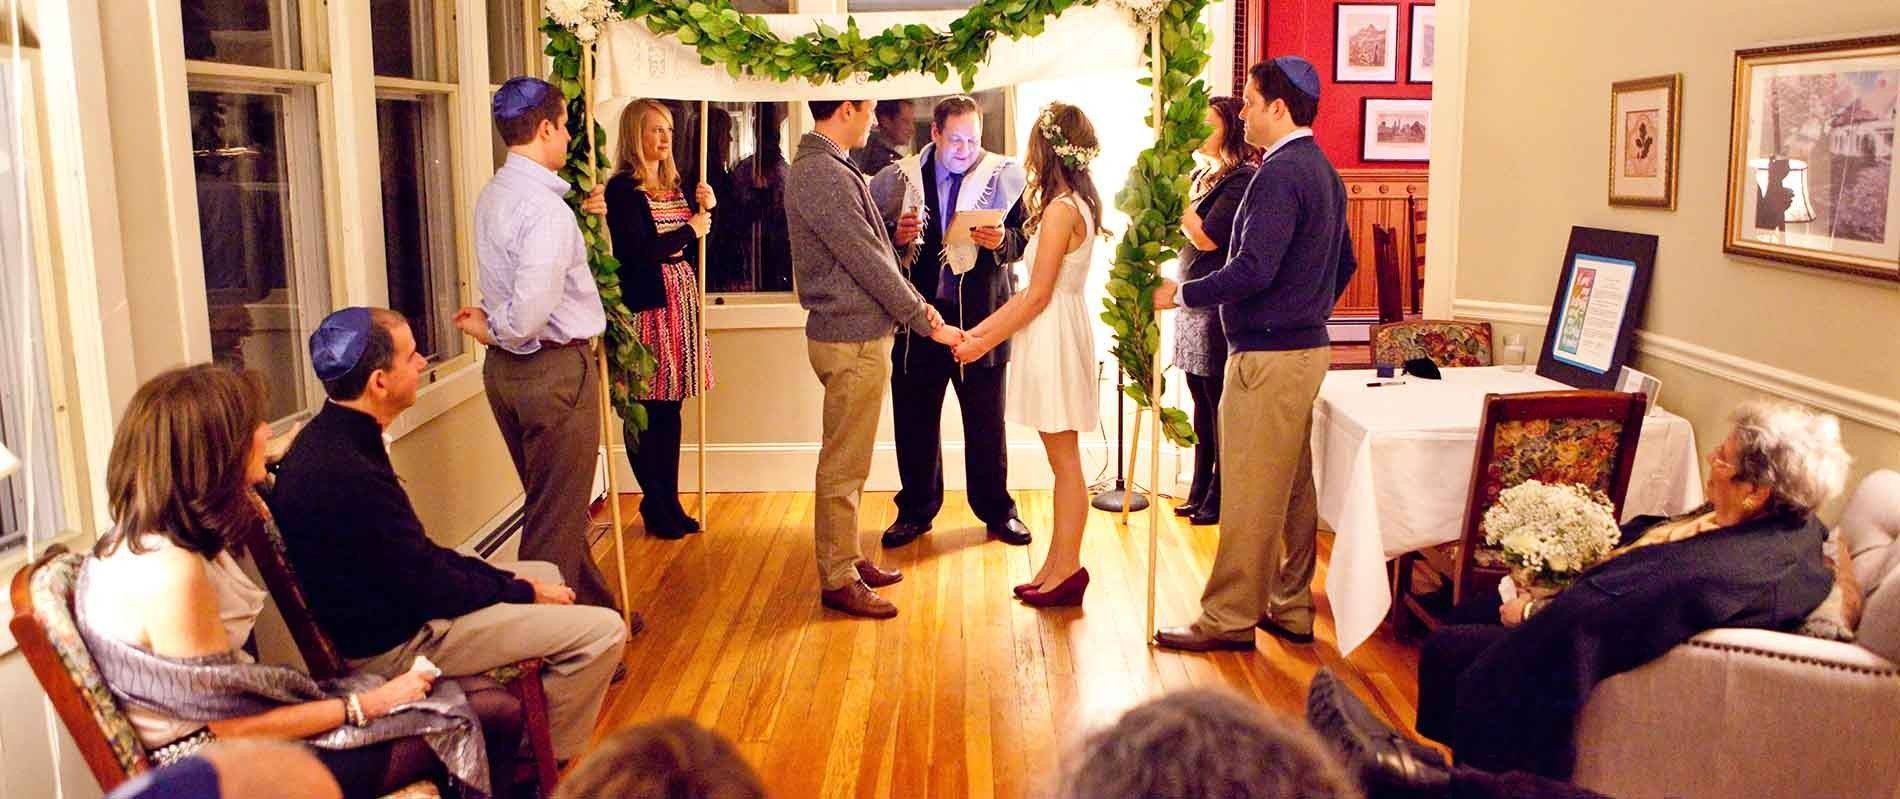 We Offer A Magical Burlington Vermont Wedding Venue That Is Small Intimate Perfect